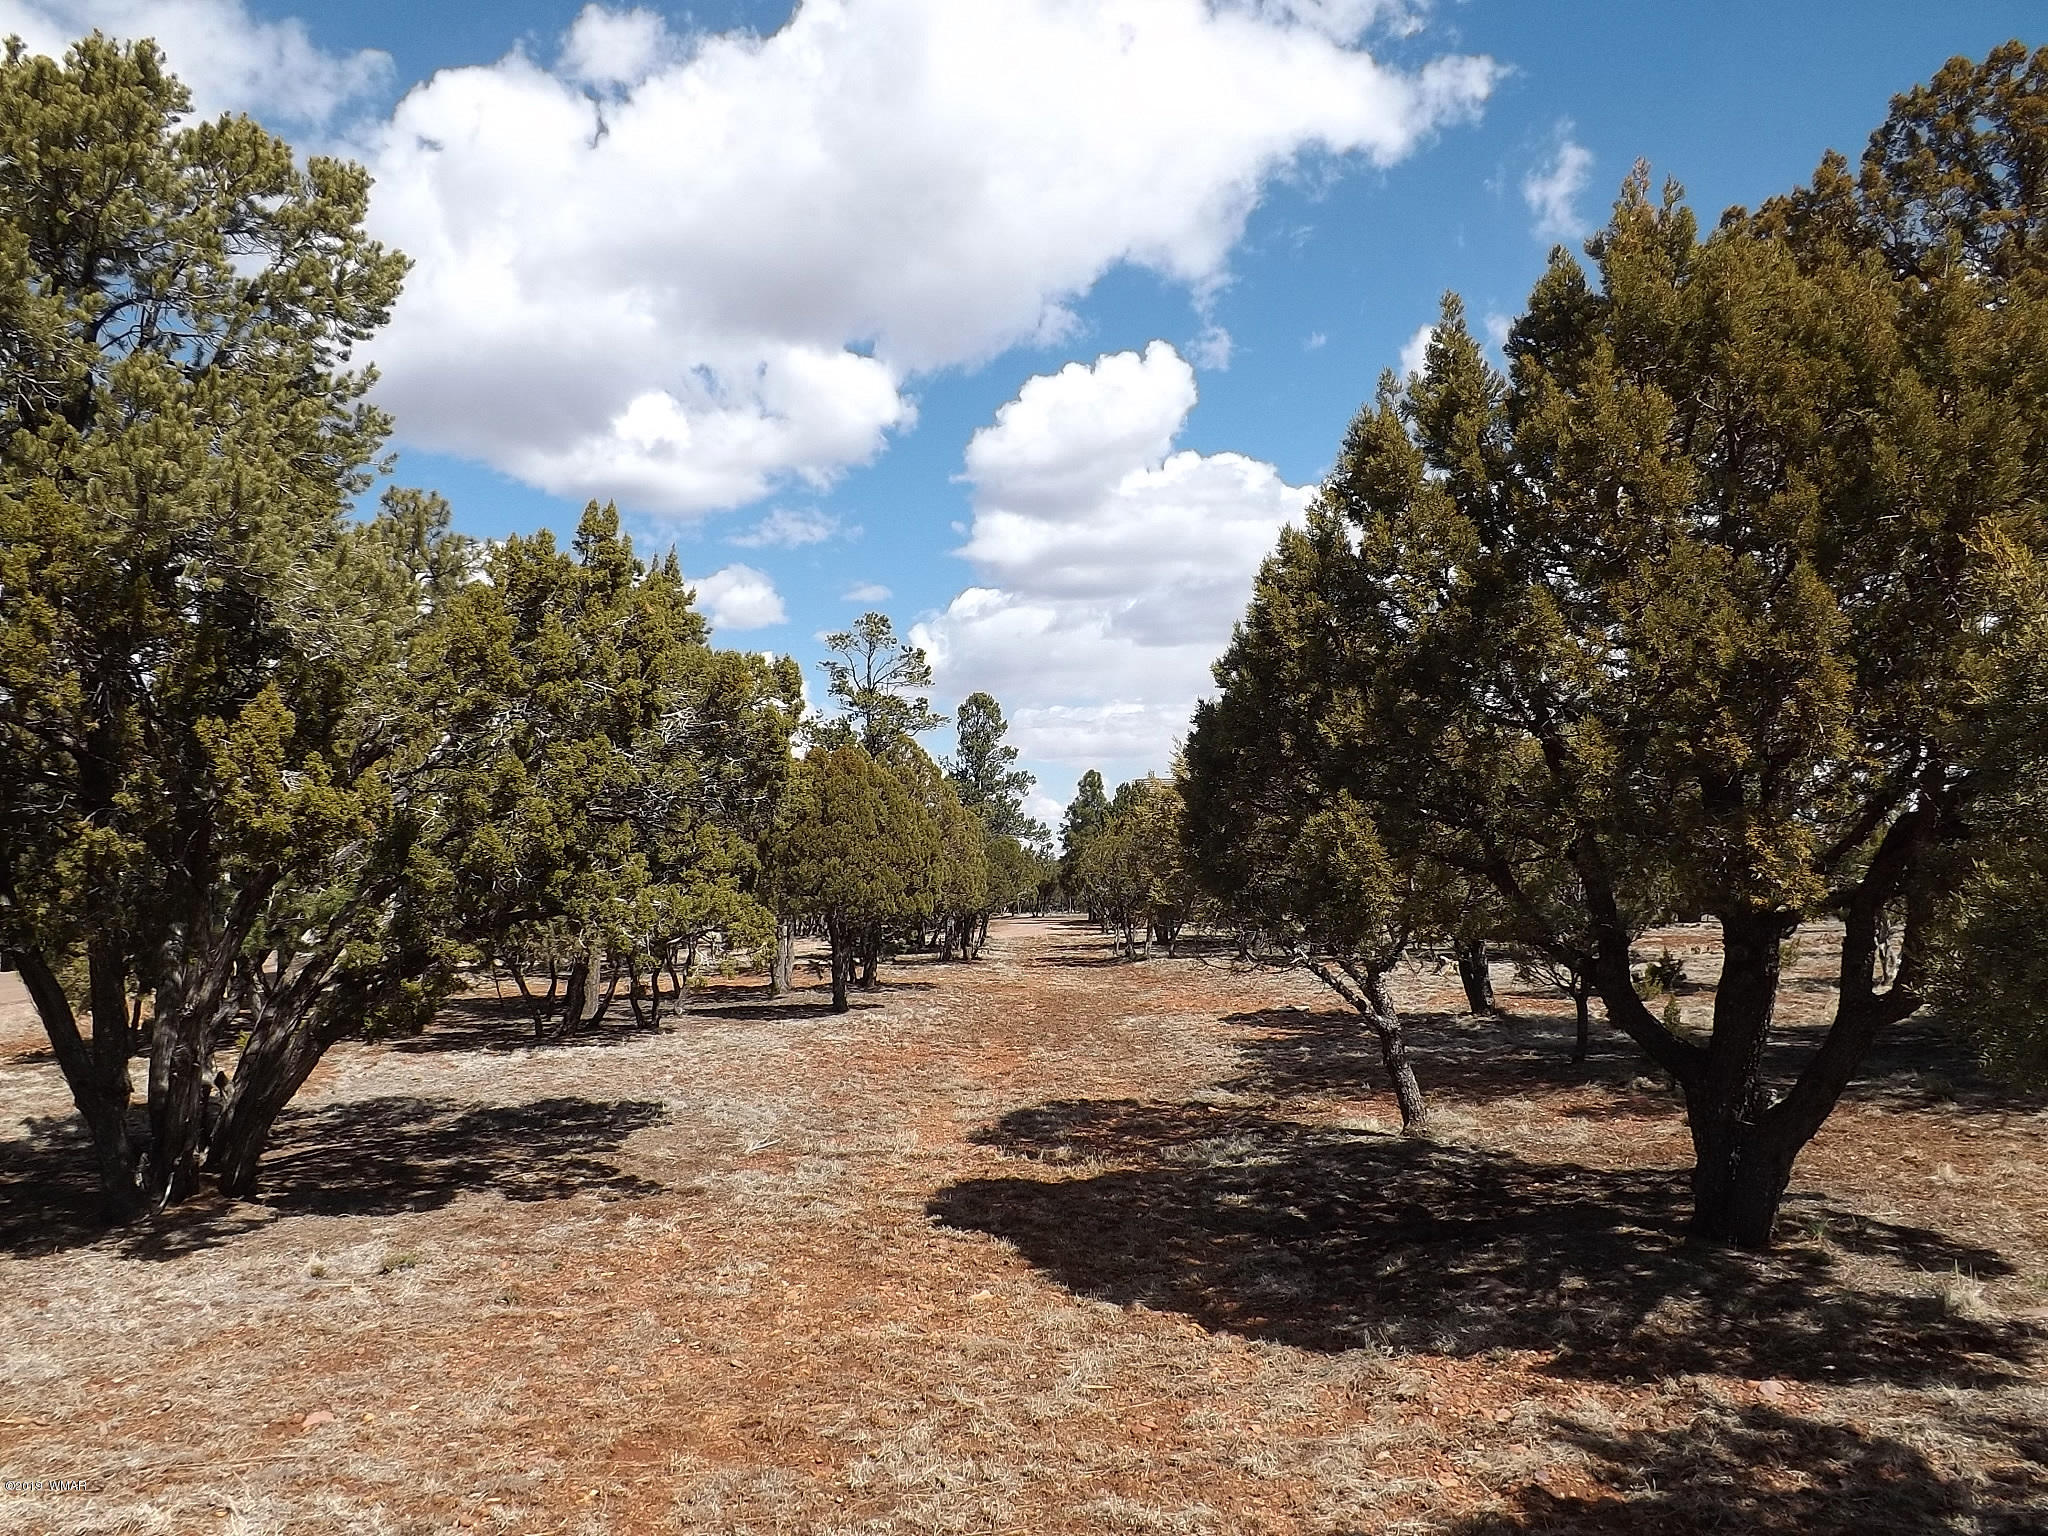 Spectacular 0.93 acre lot in Mogollon Air Park. This lot fronts to a tie down area and has taxiway access, Very level with a natural building site. Room enough for your dream cabin and a hangar. Underground utilities to the lot and has a septic installed. County maintained roads for easy year around access. Very nicely treed.